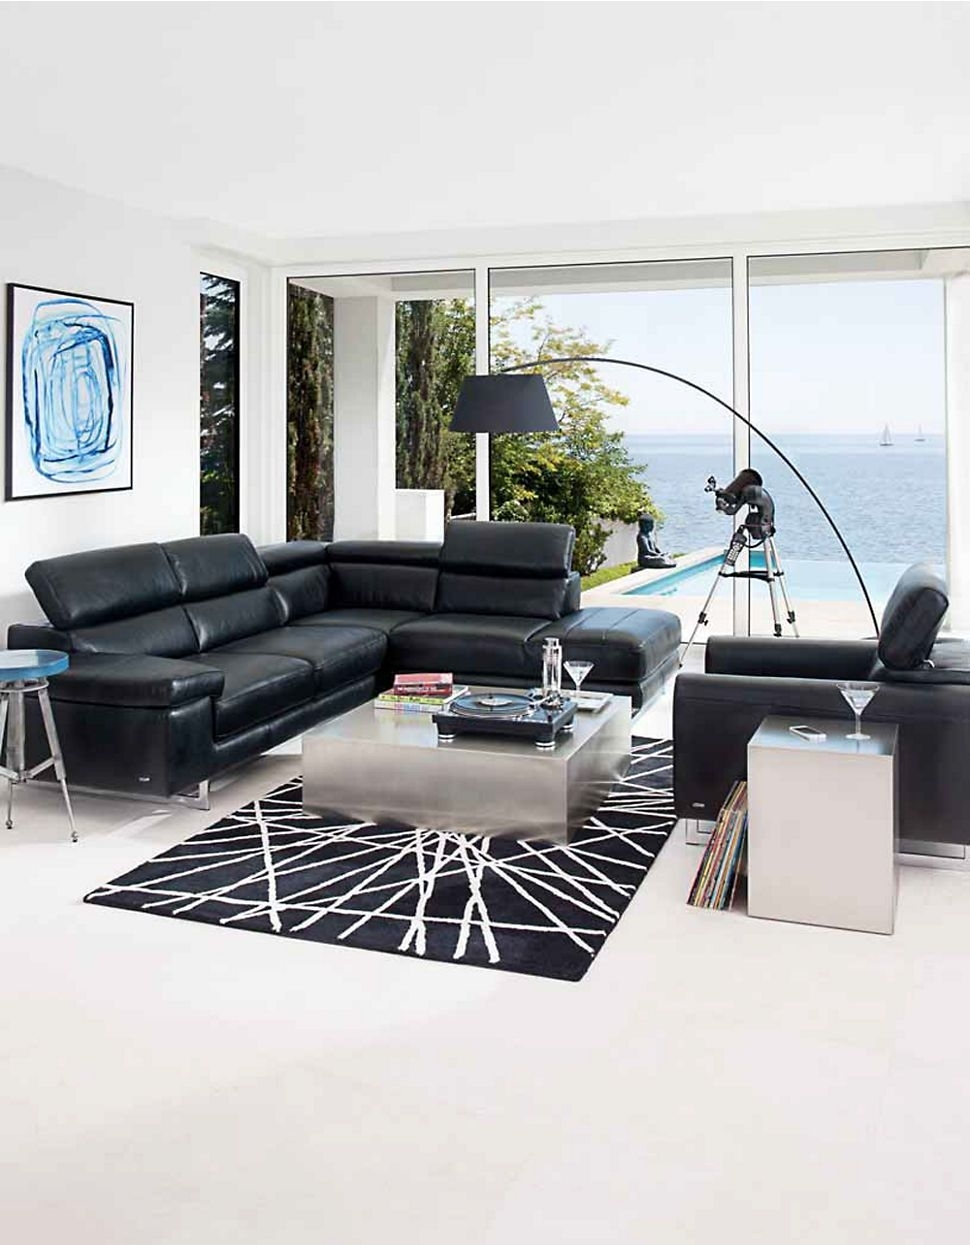 Umbria Sectional Sofanatuzzi Editions   Hudson's Bay   House Throughout The Bay Sectional Sofas (View 2 of 10)